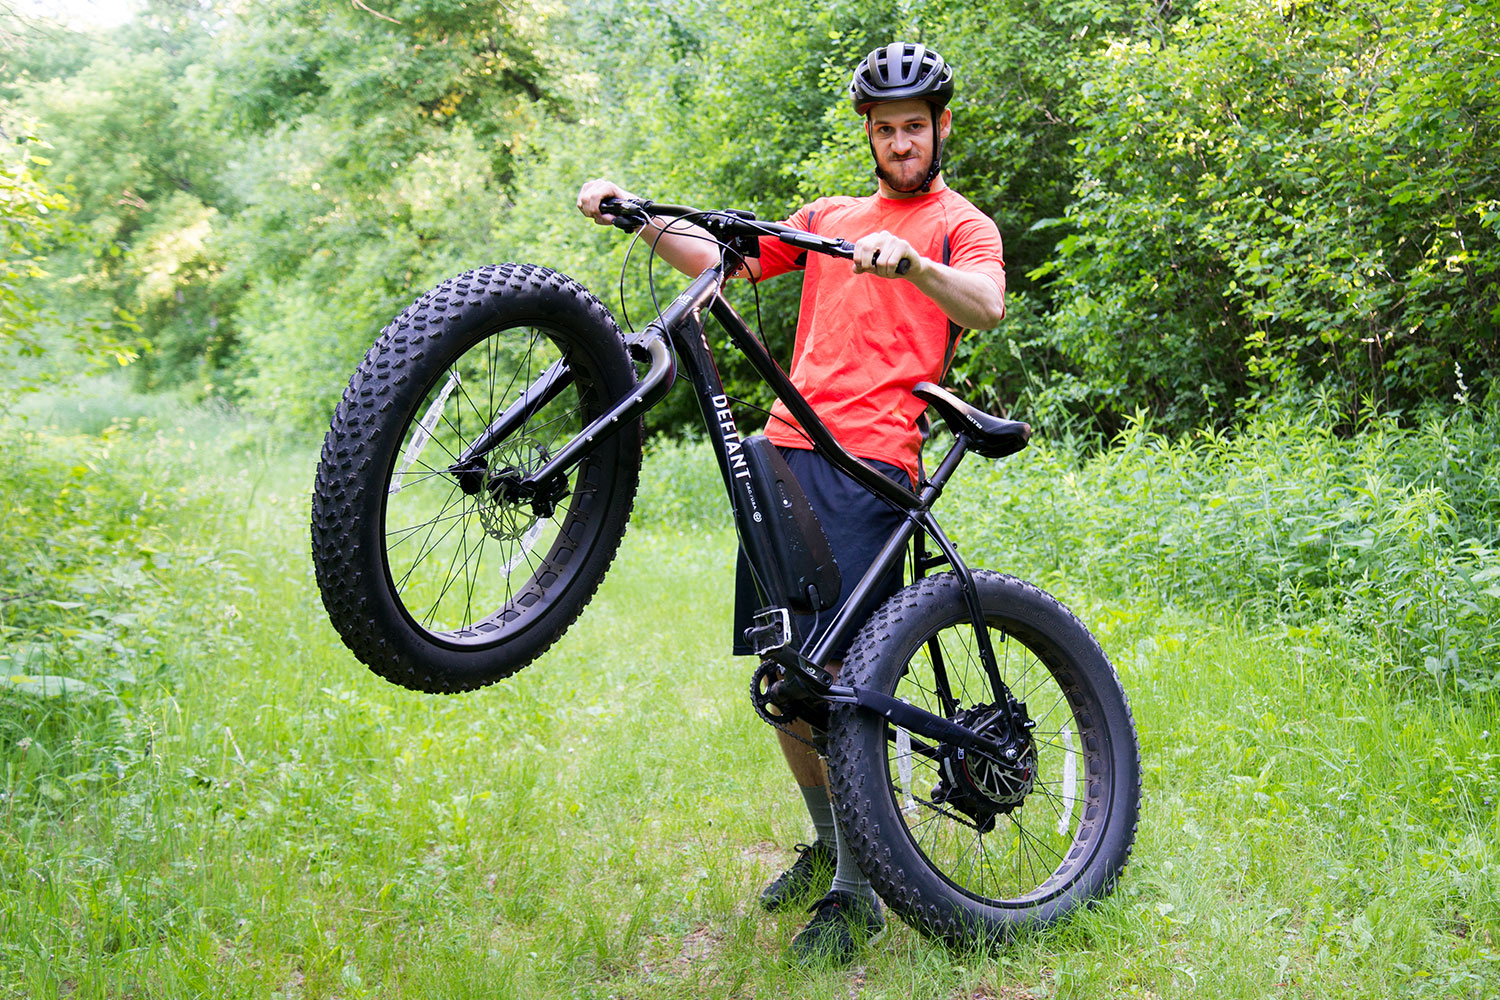 Fat Tires For Cars, Defiant 01 E Fat Bike Electric Pedal Assist, Fat Tires For Cars